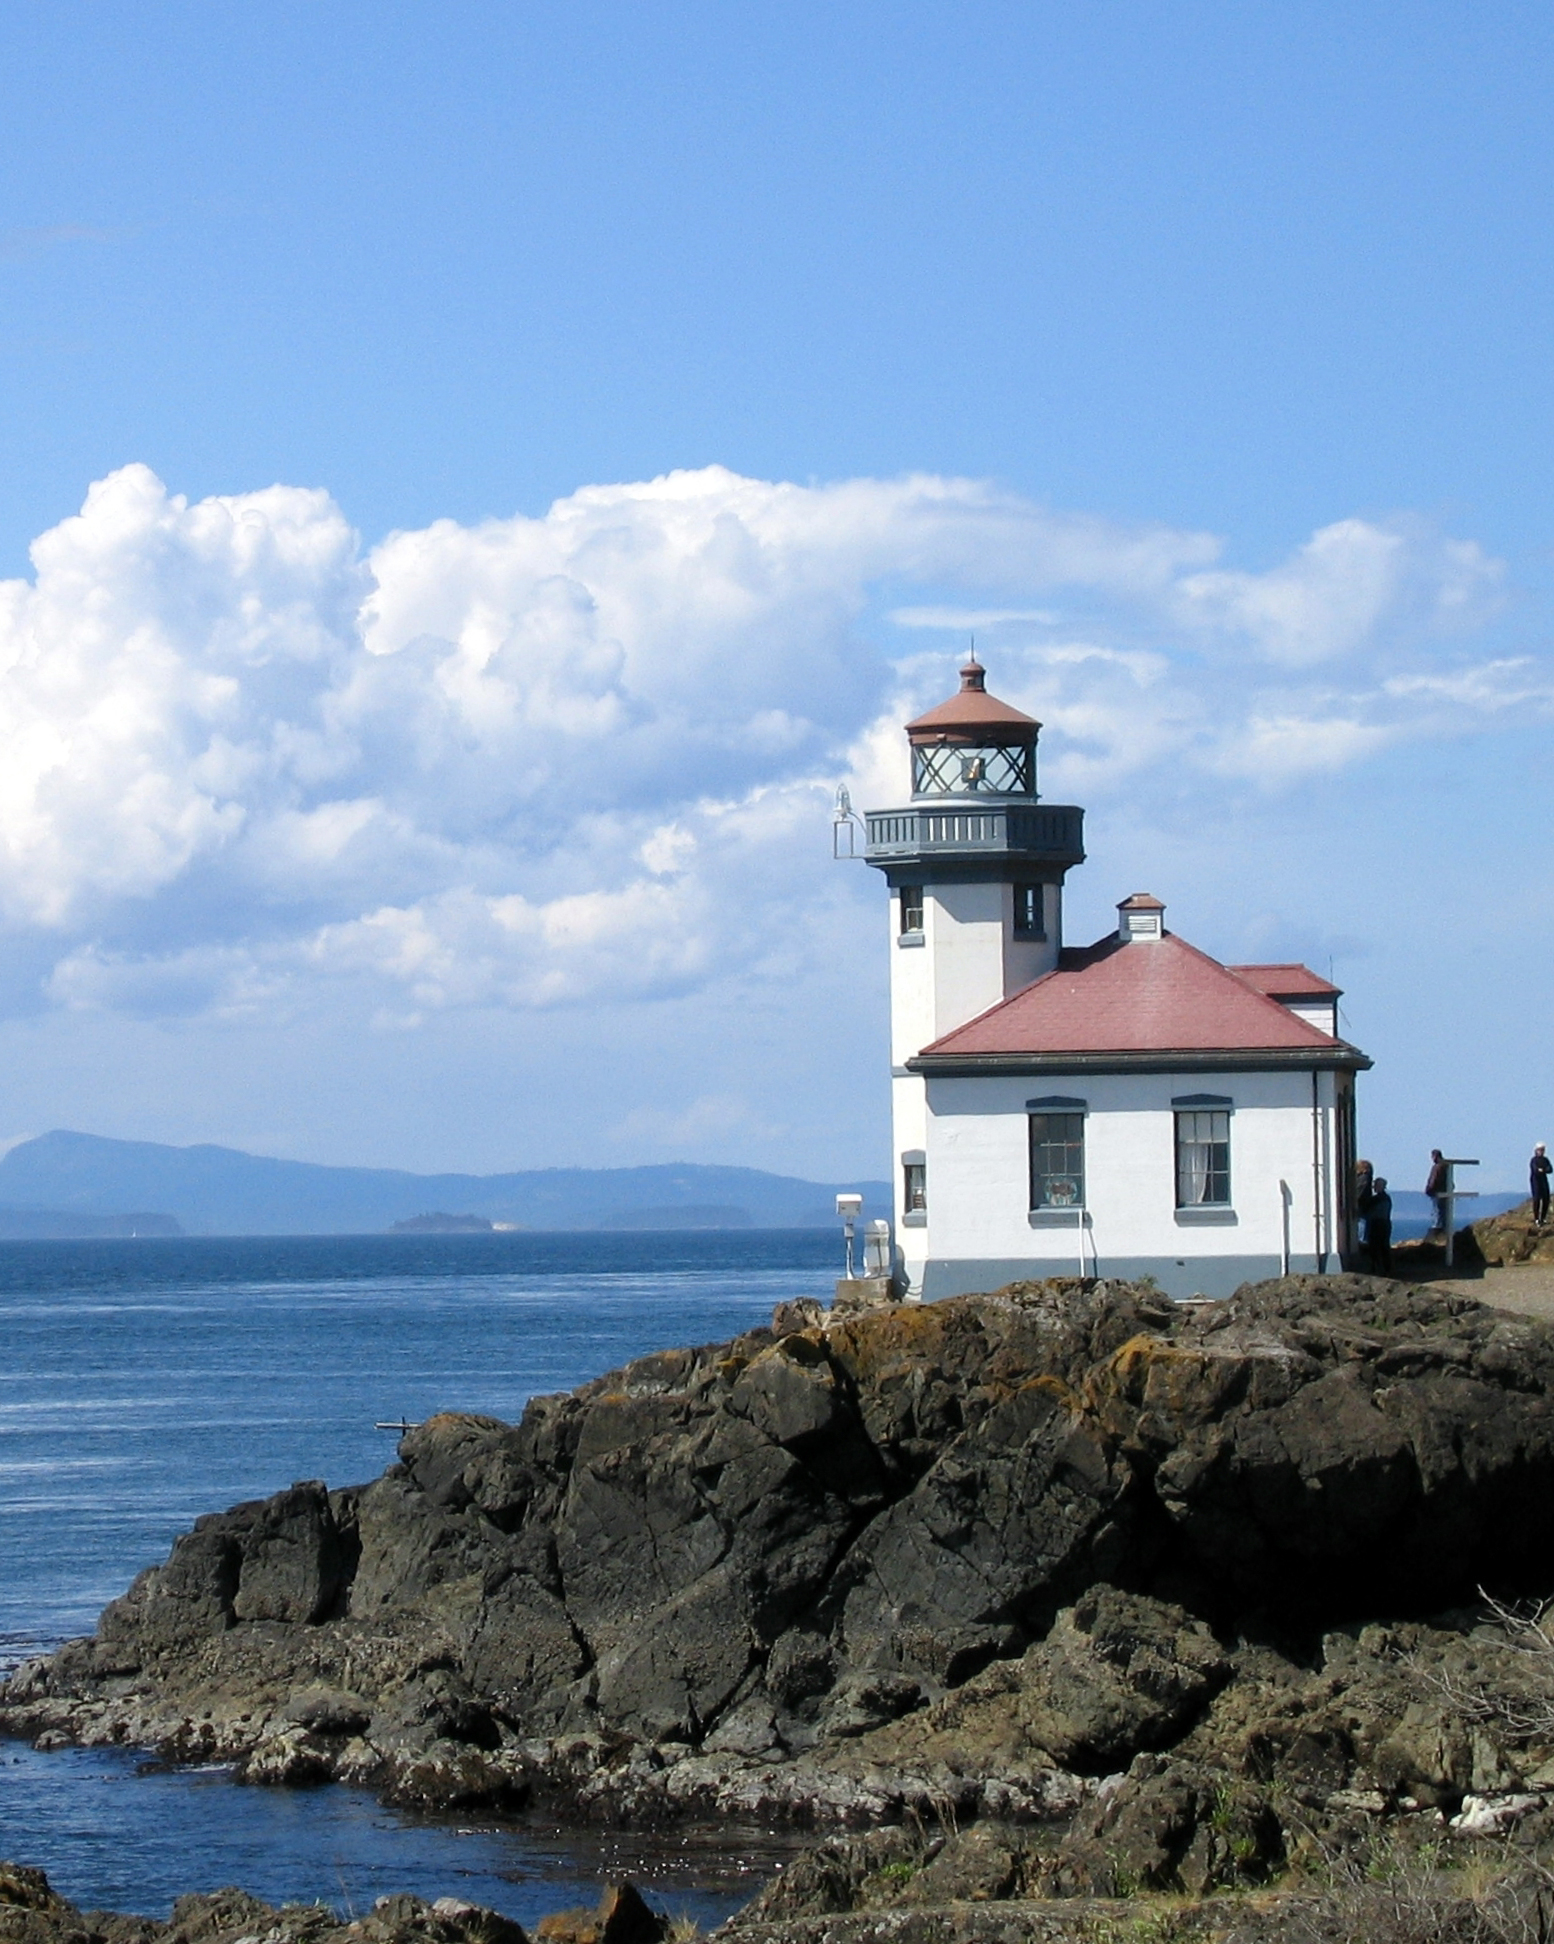 us-islands-san-juan-islands-lime-kiln-lighthouse-1115.jpg